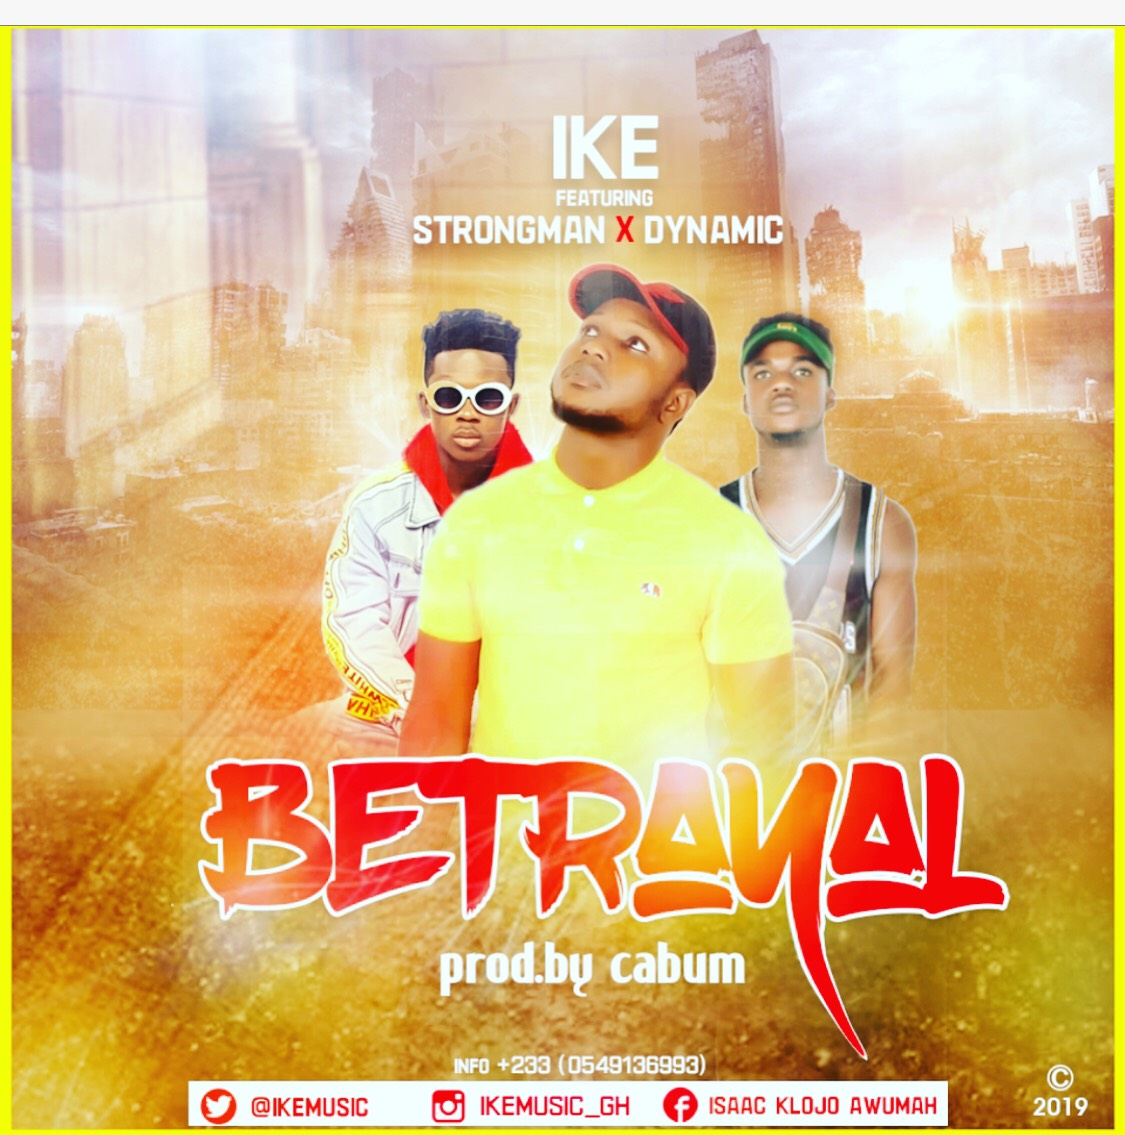 Ike Ft Strongman x Dynamic - Betrayal (Prod By Cabum)